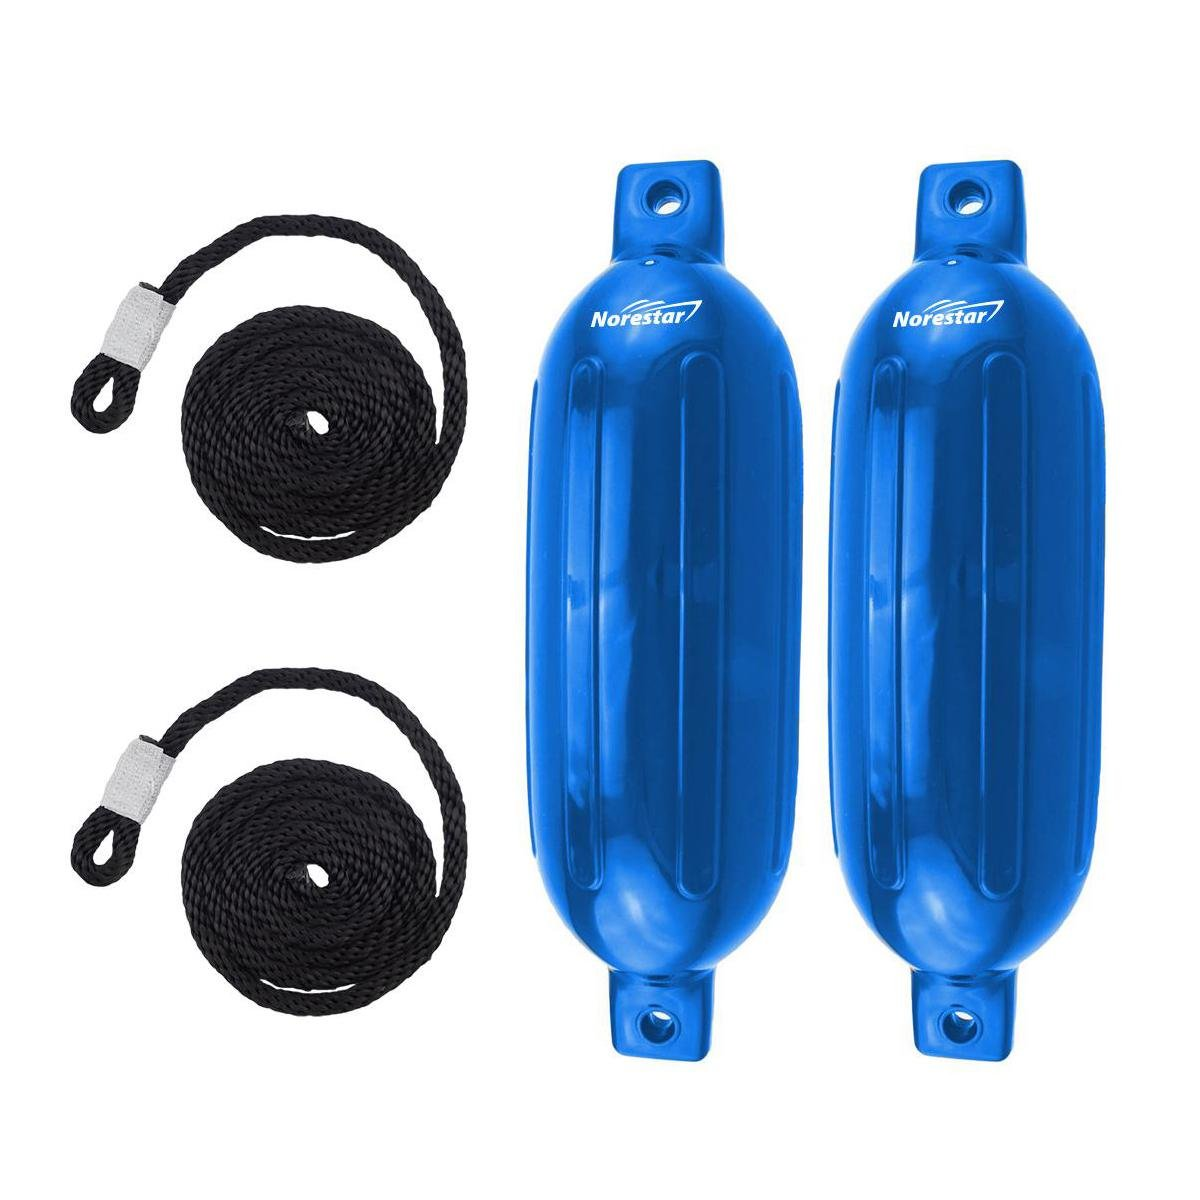 Norestar 2-Pack, 5.5'' x 20'' Ribbed Fender Deflated with 2 Fender Lines for Boat or Dock (Blue) by Norestar